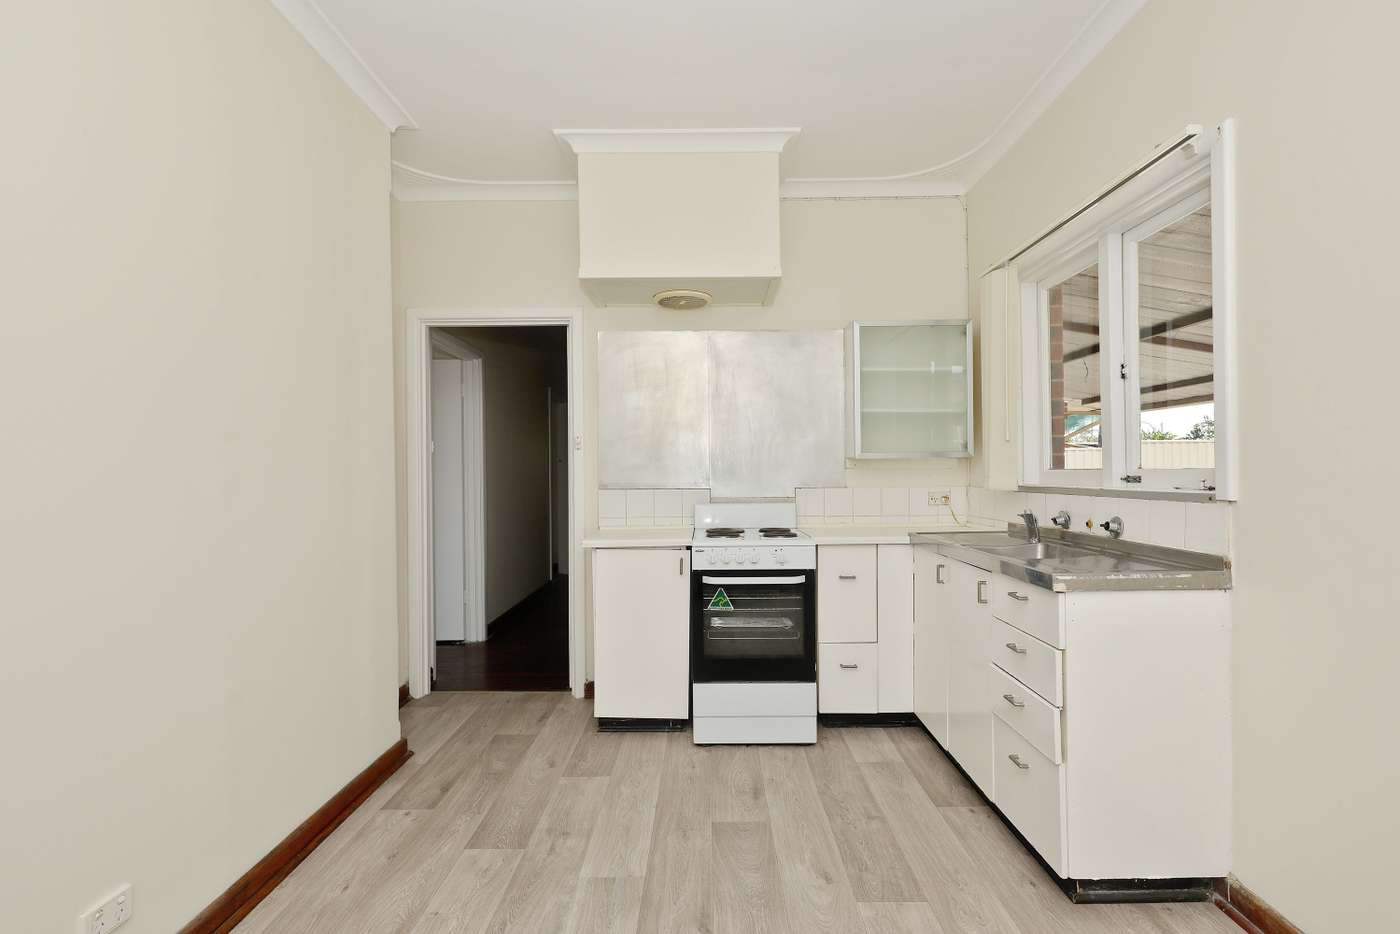 Seventh view of Homely house listing, 306 Wharf Street, Queens Park WA 6107